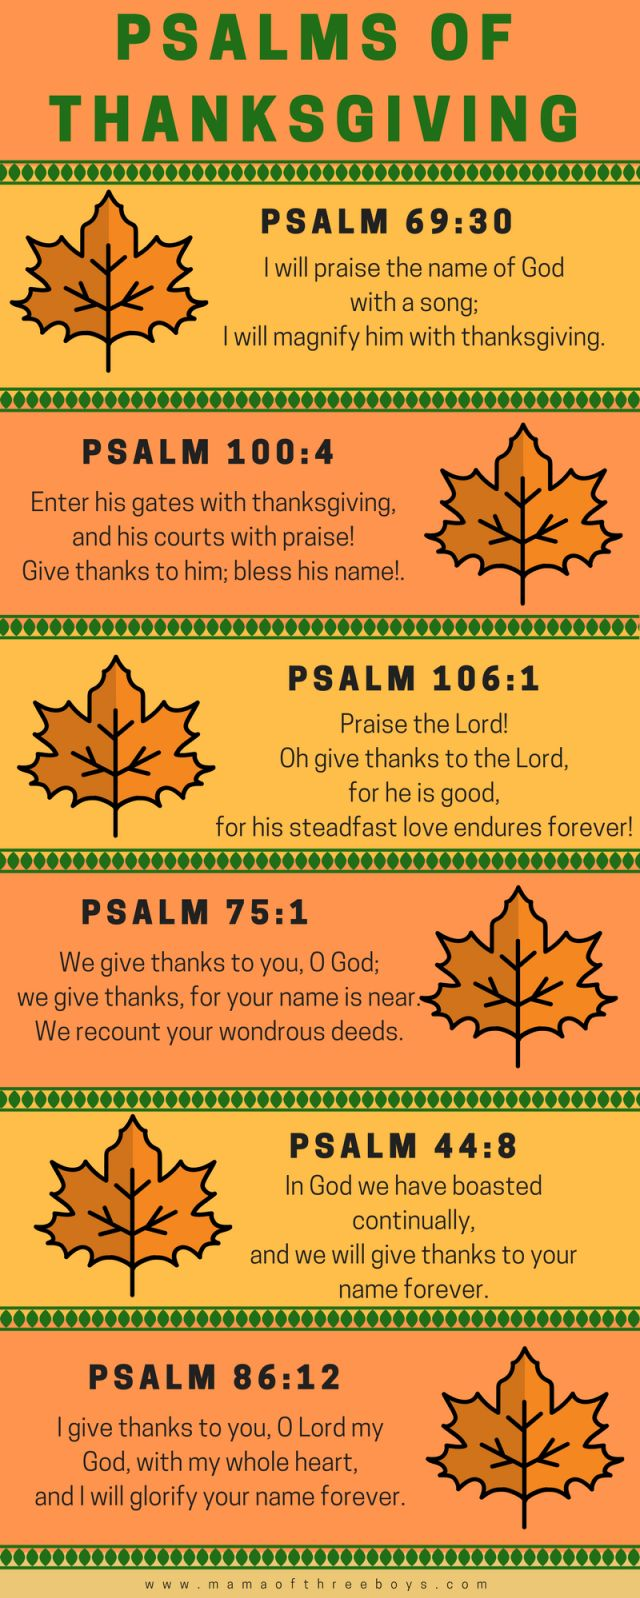 psalms-of-thanksgiving